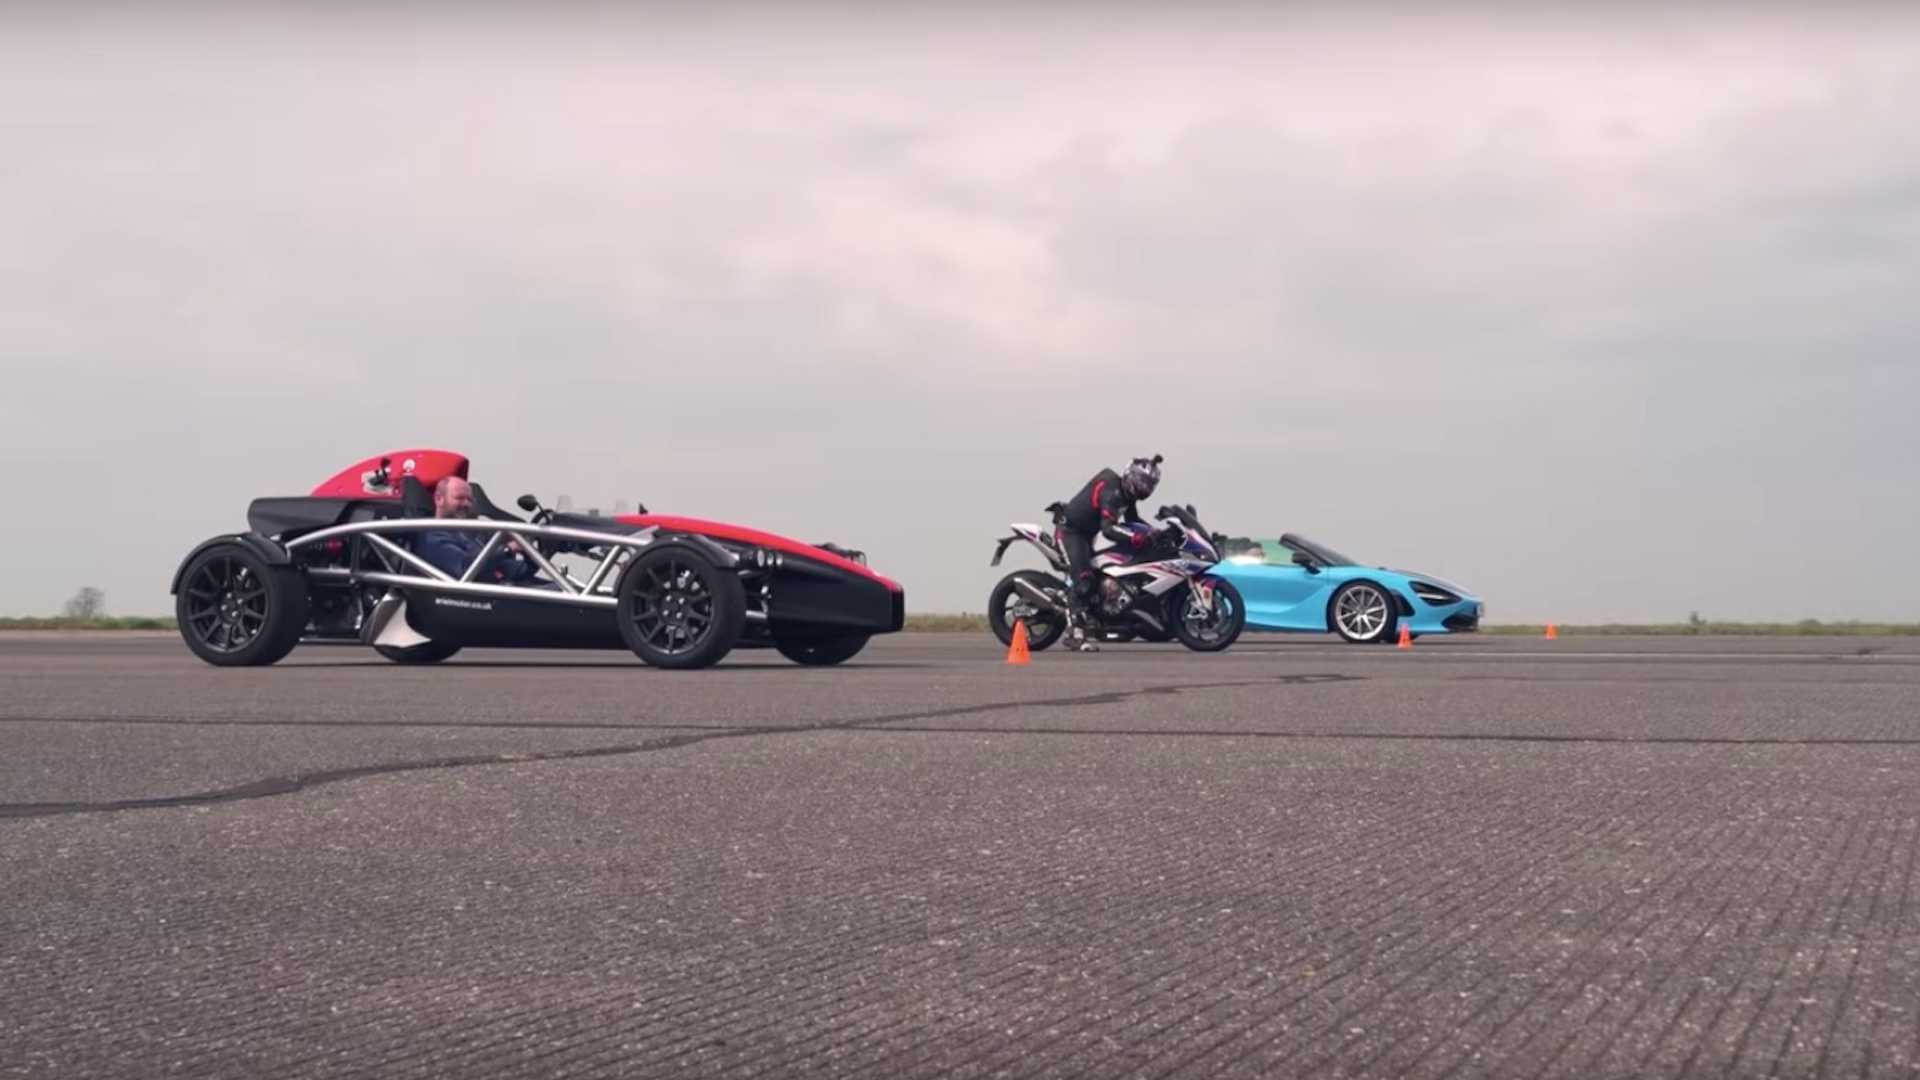 Mclaren 720s Vs Bmw S1000rr Ariel Atom 4 In Roofless Drag Race